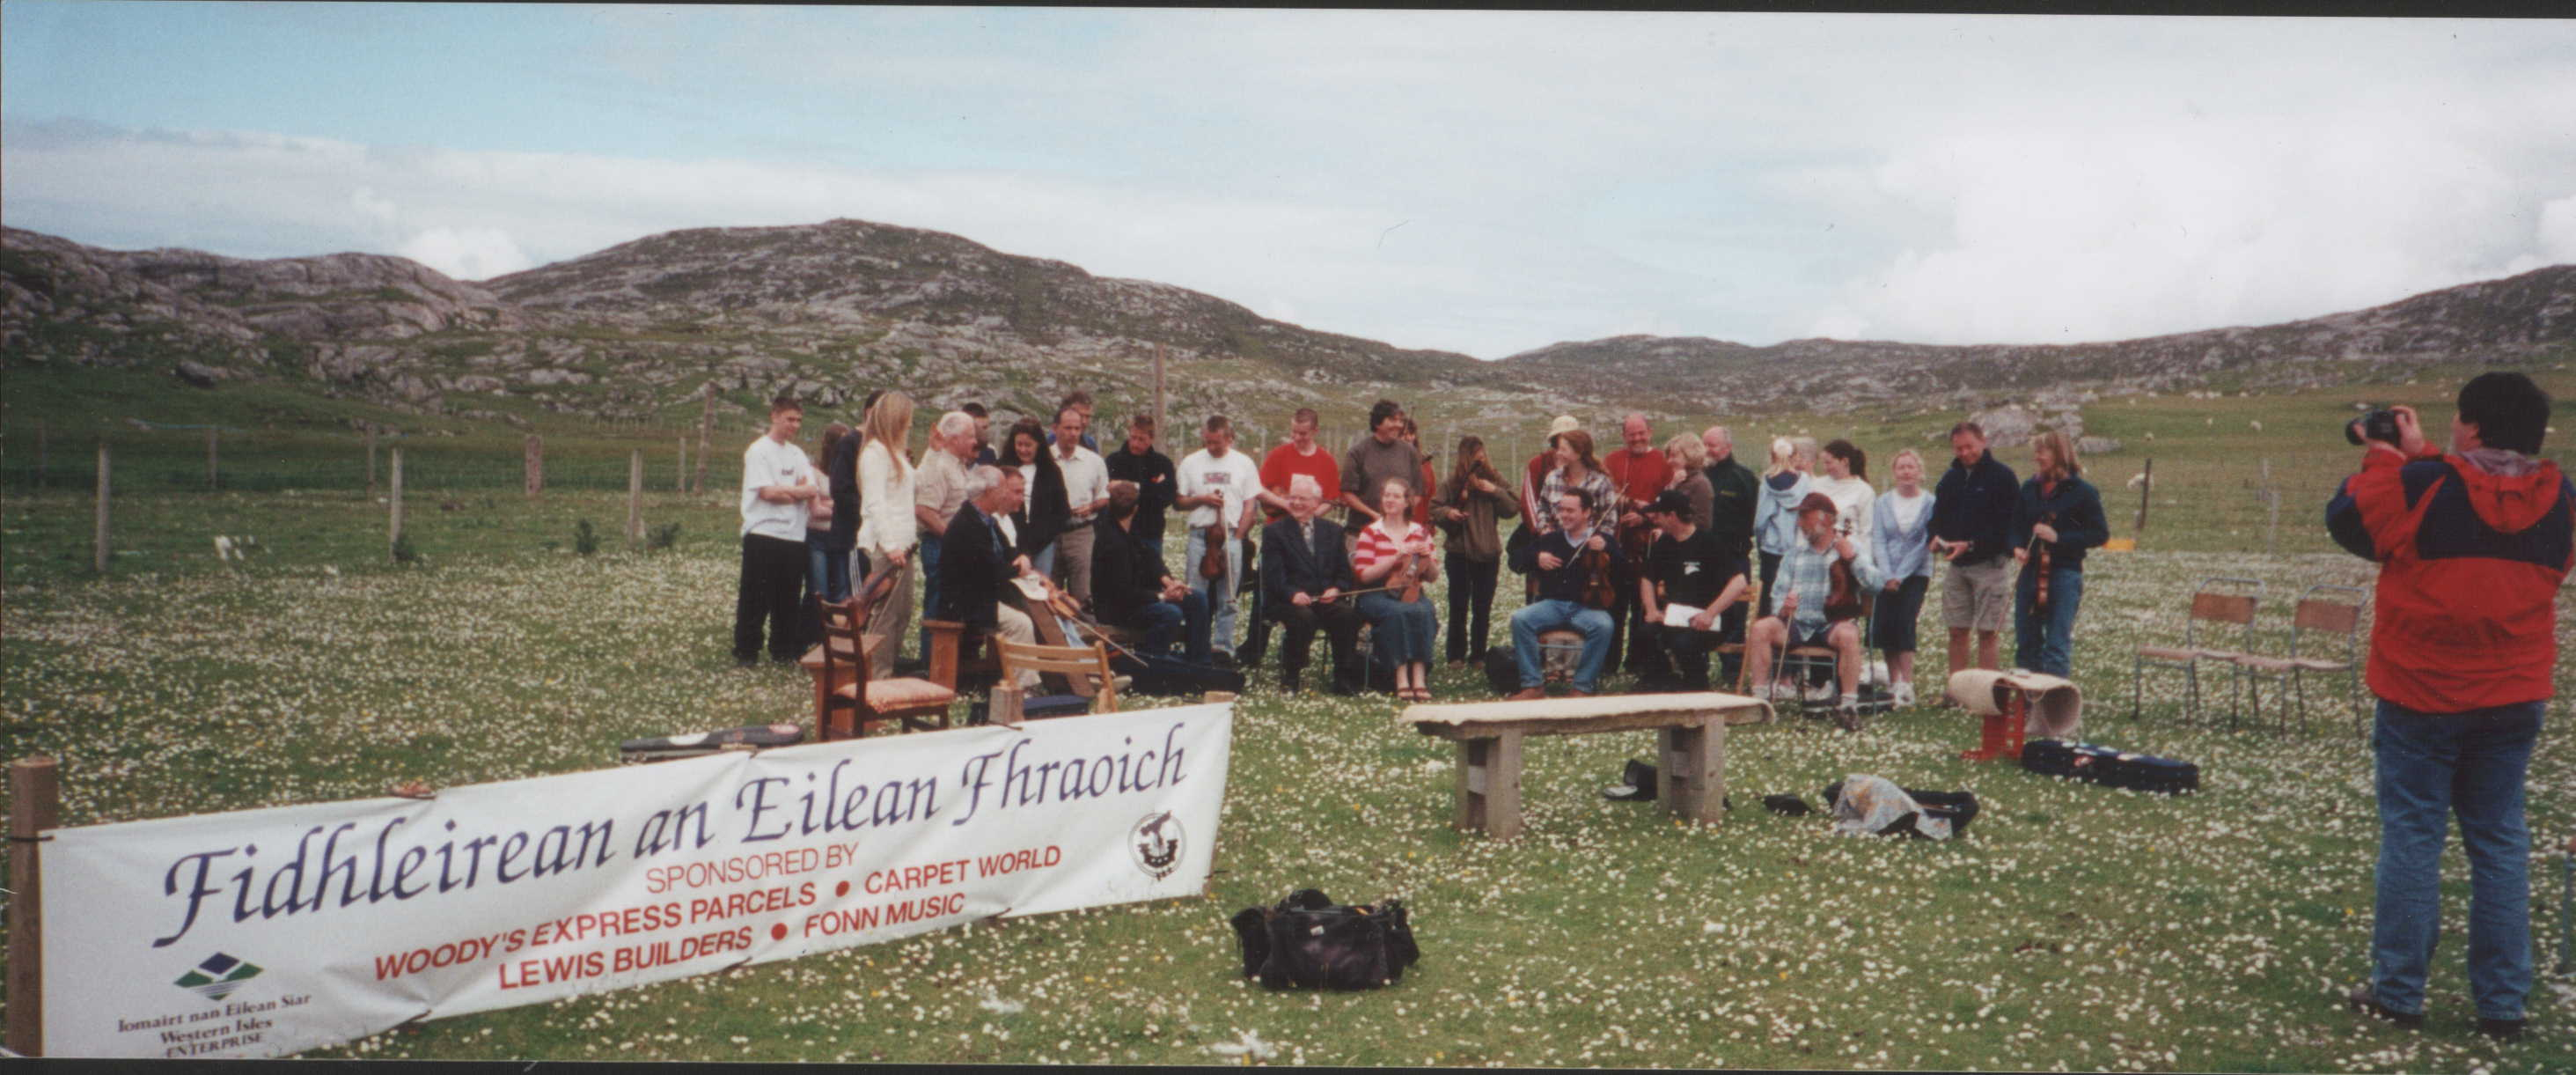 Group Photo 2002